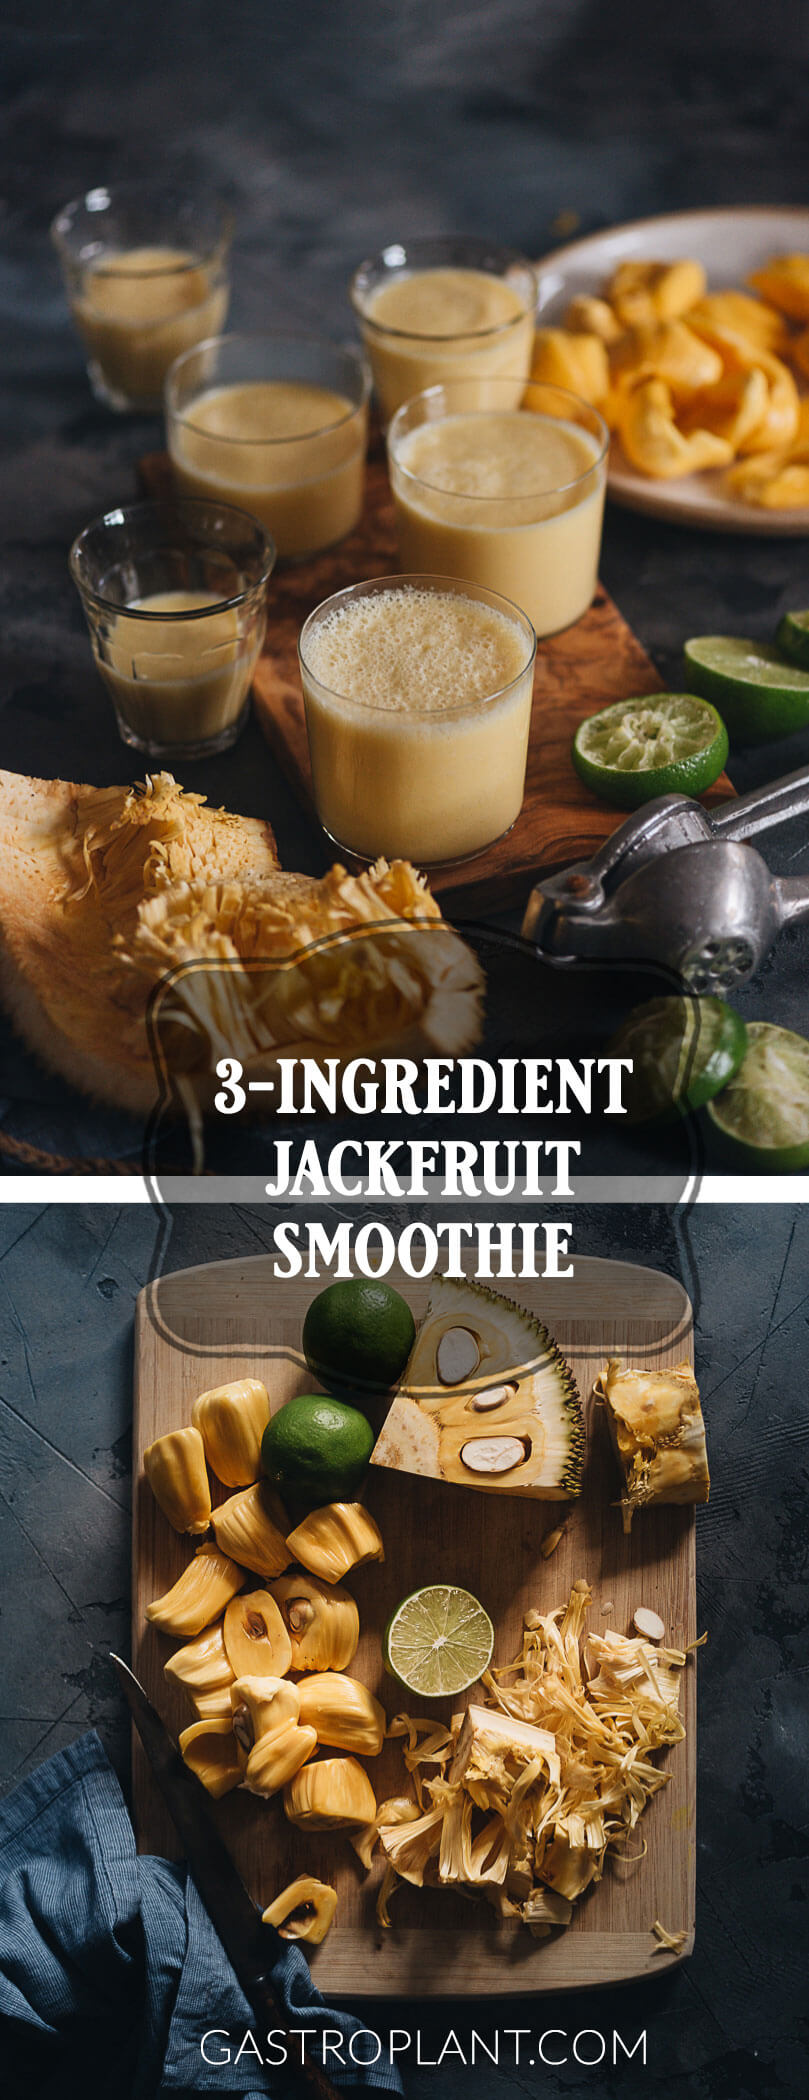 Easy Healthy 3-Ingredient Jackfruit Smoothie Collage